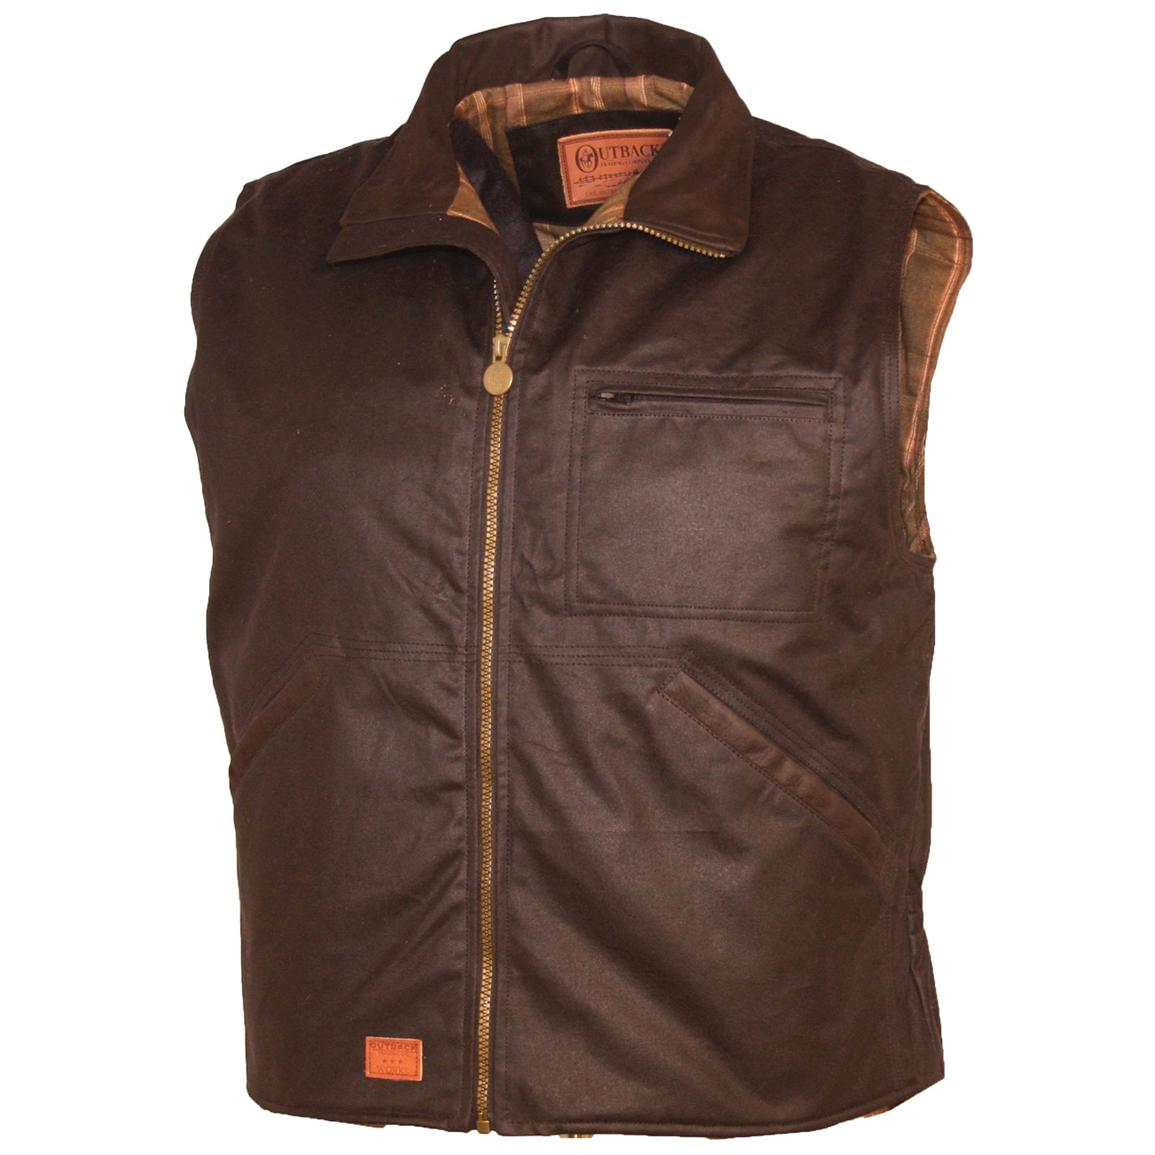 Outback Trading Company® Sawbuck Vest, Bronze